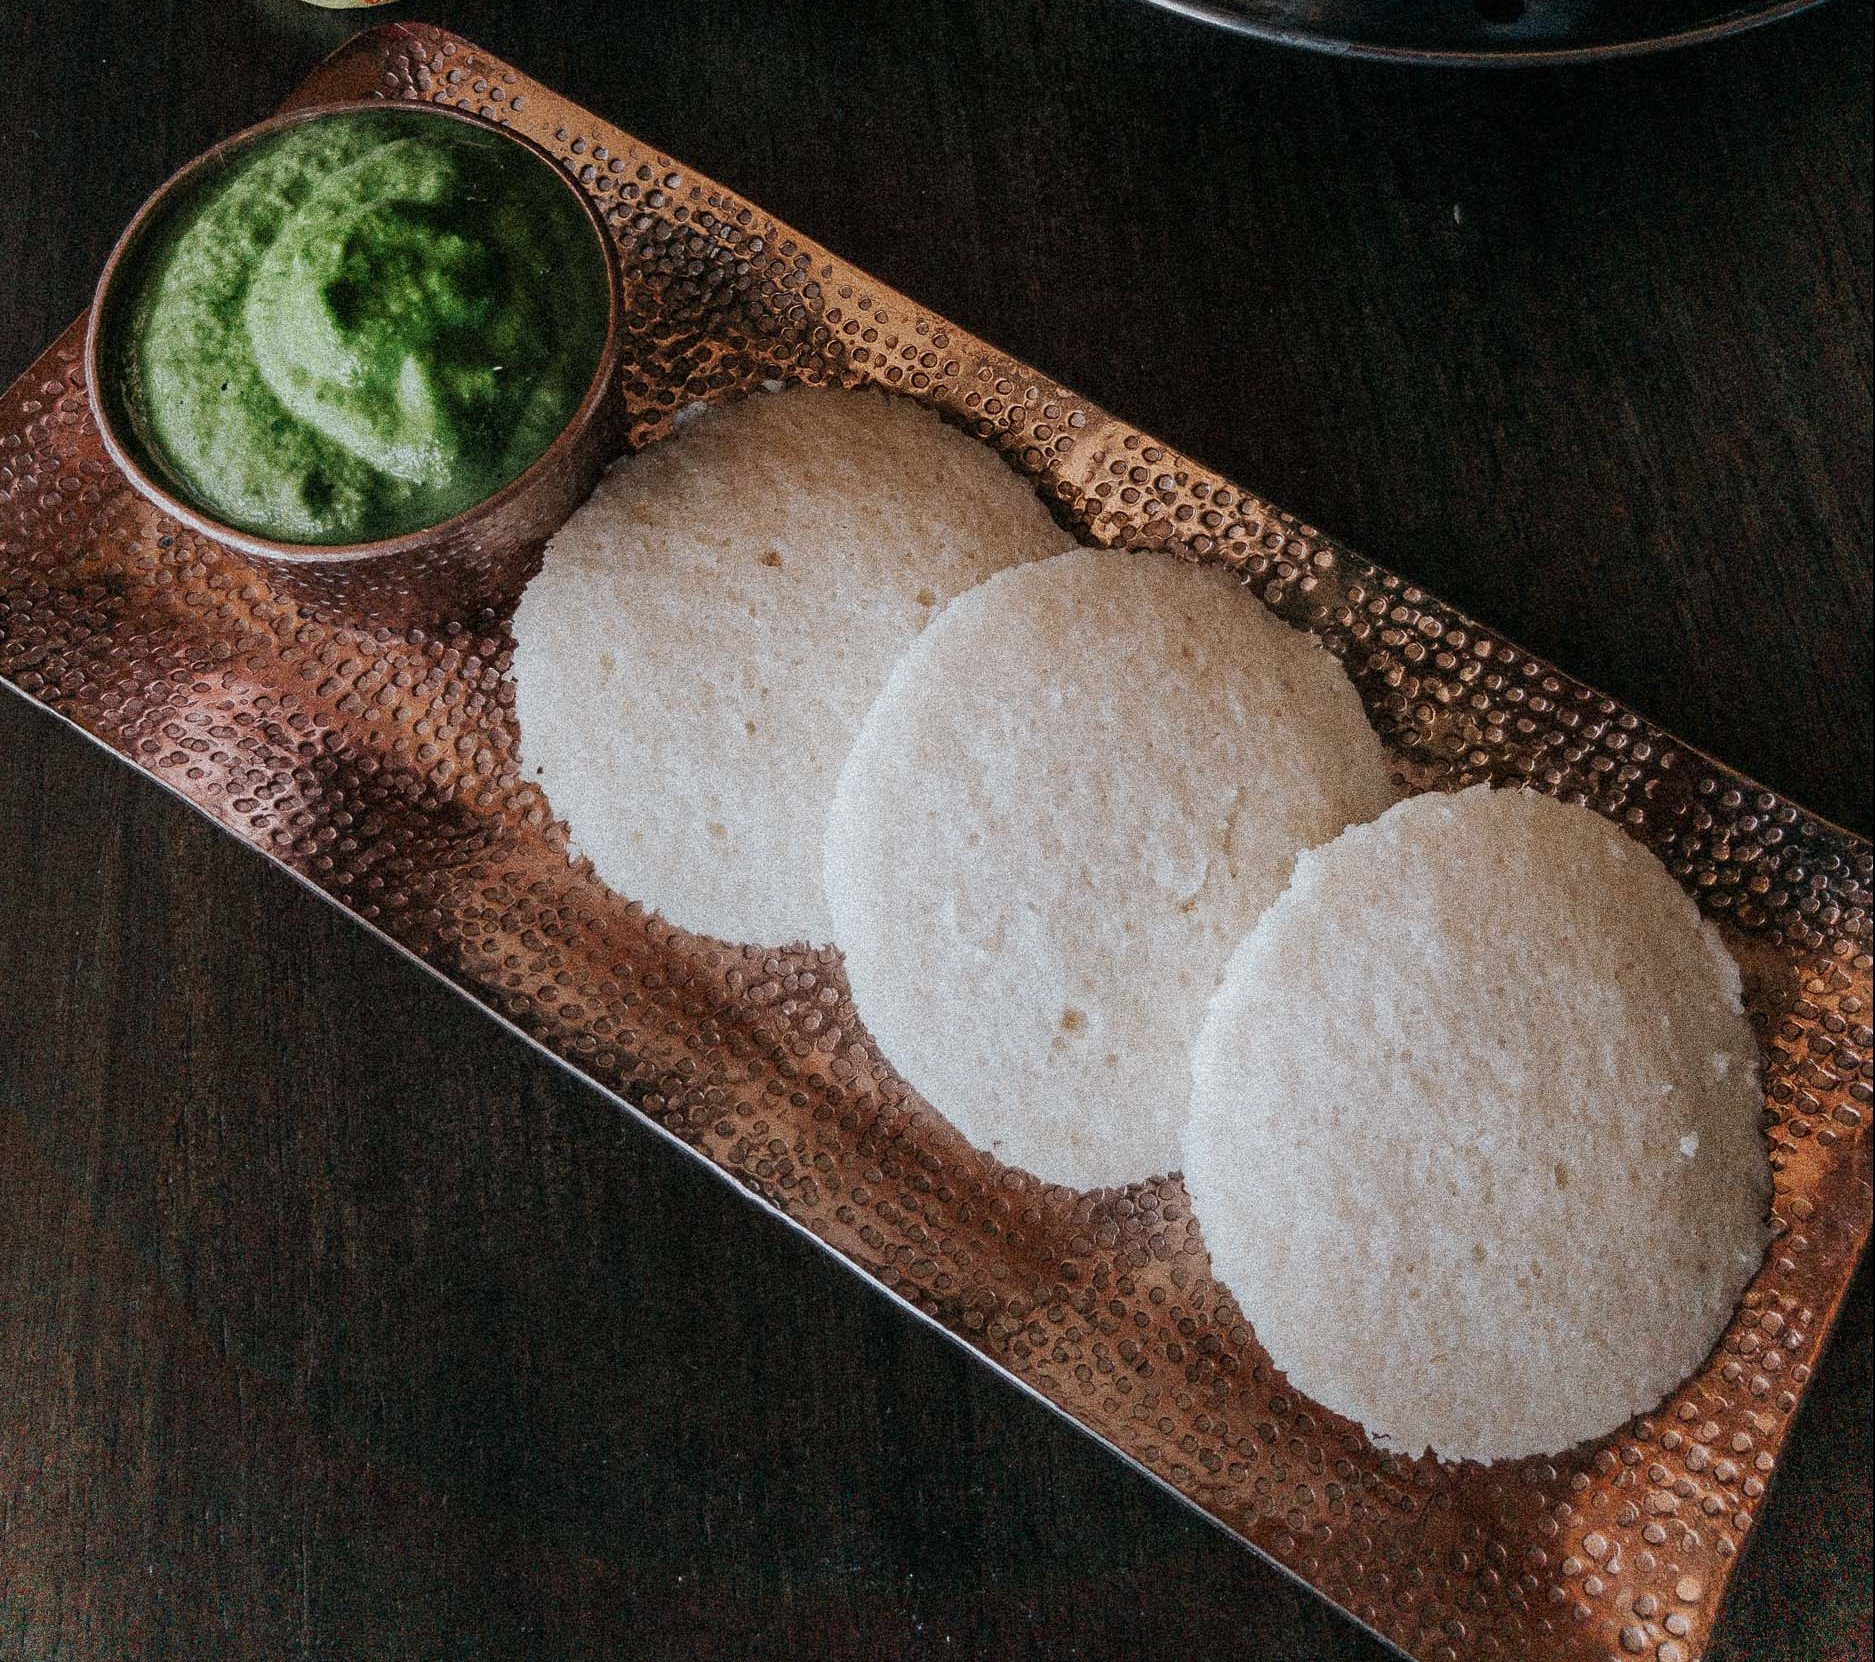 Flatlay of idli with green peanut coconut coriander chutney alongside an idli stand and kathakali dancer boblehead